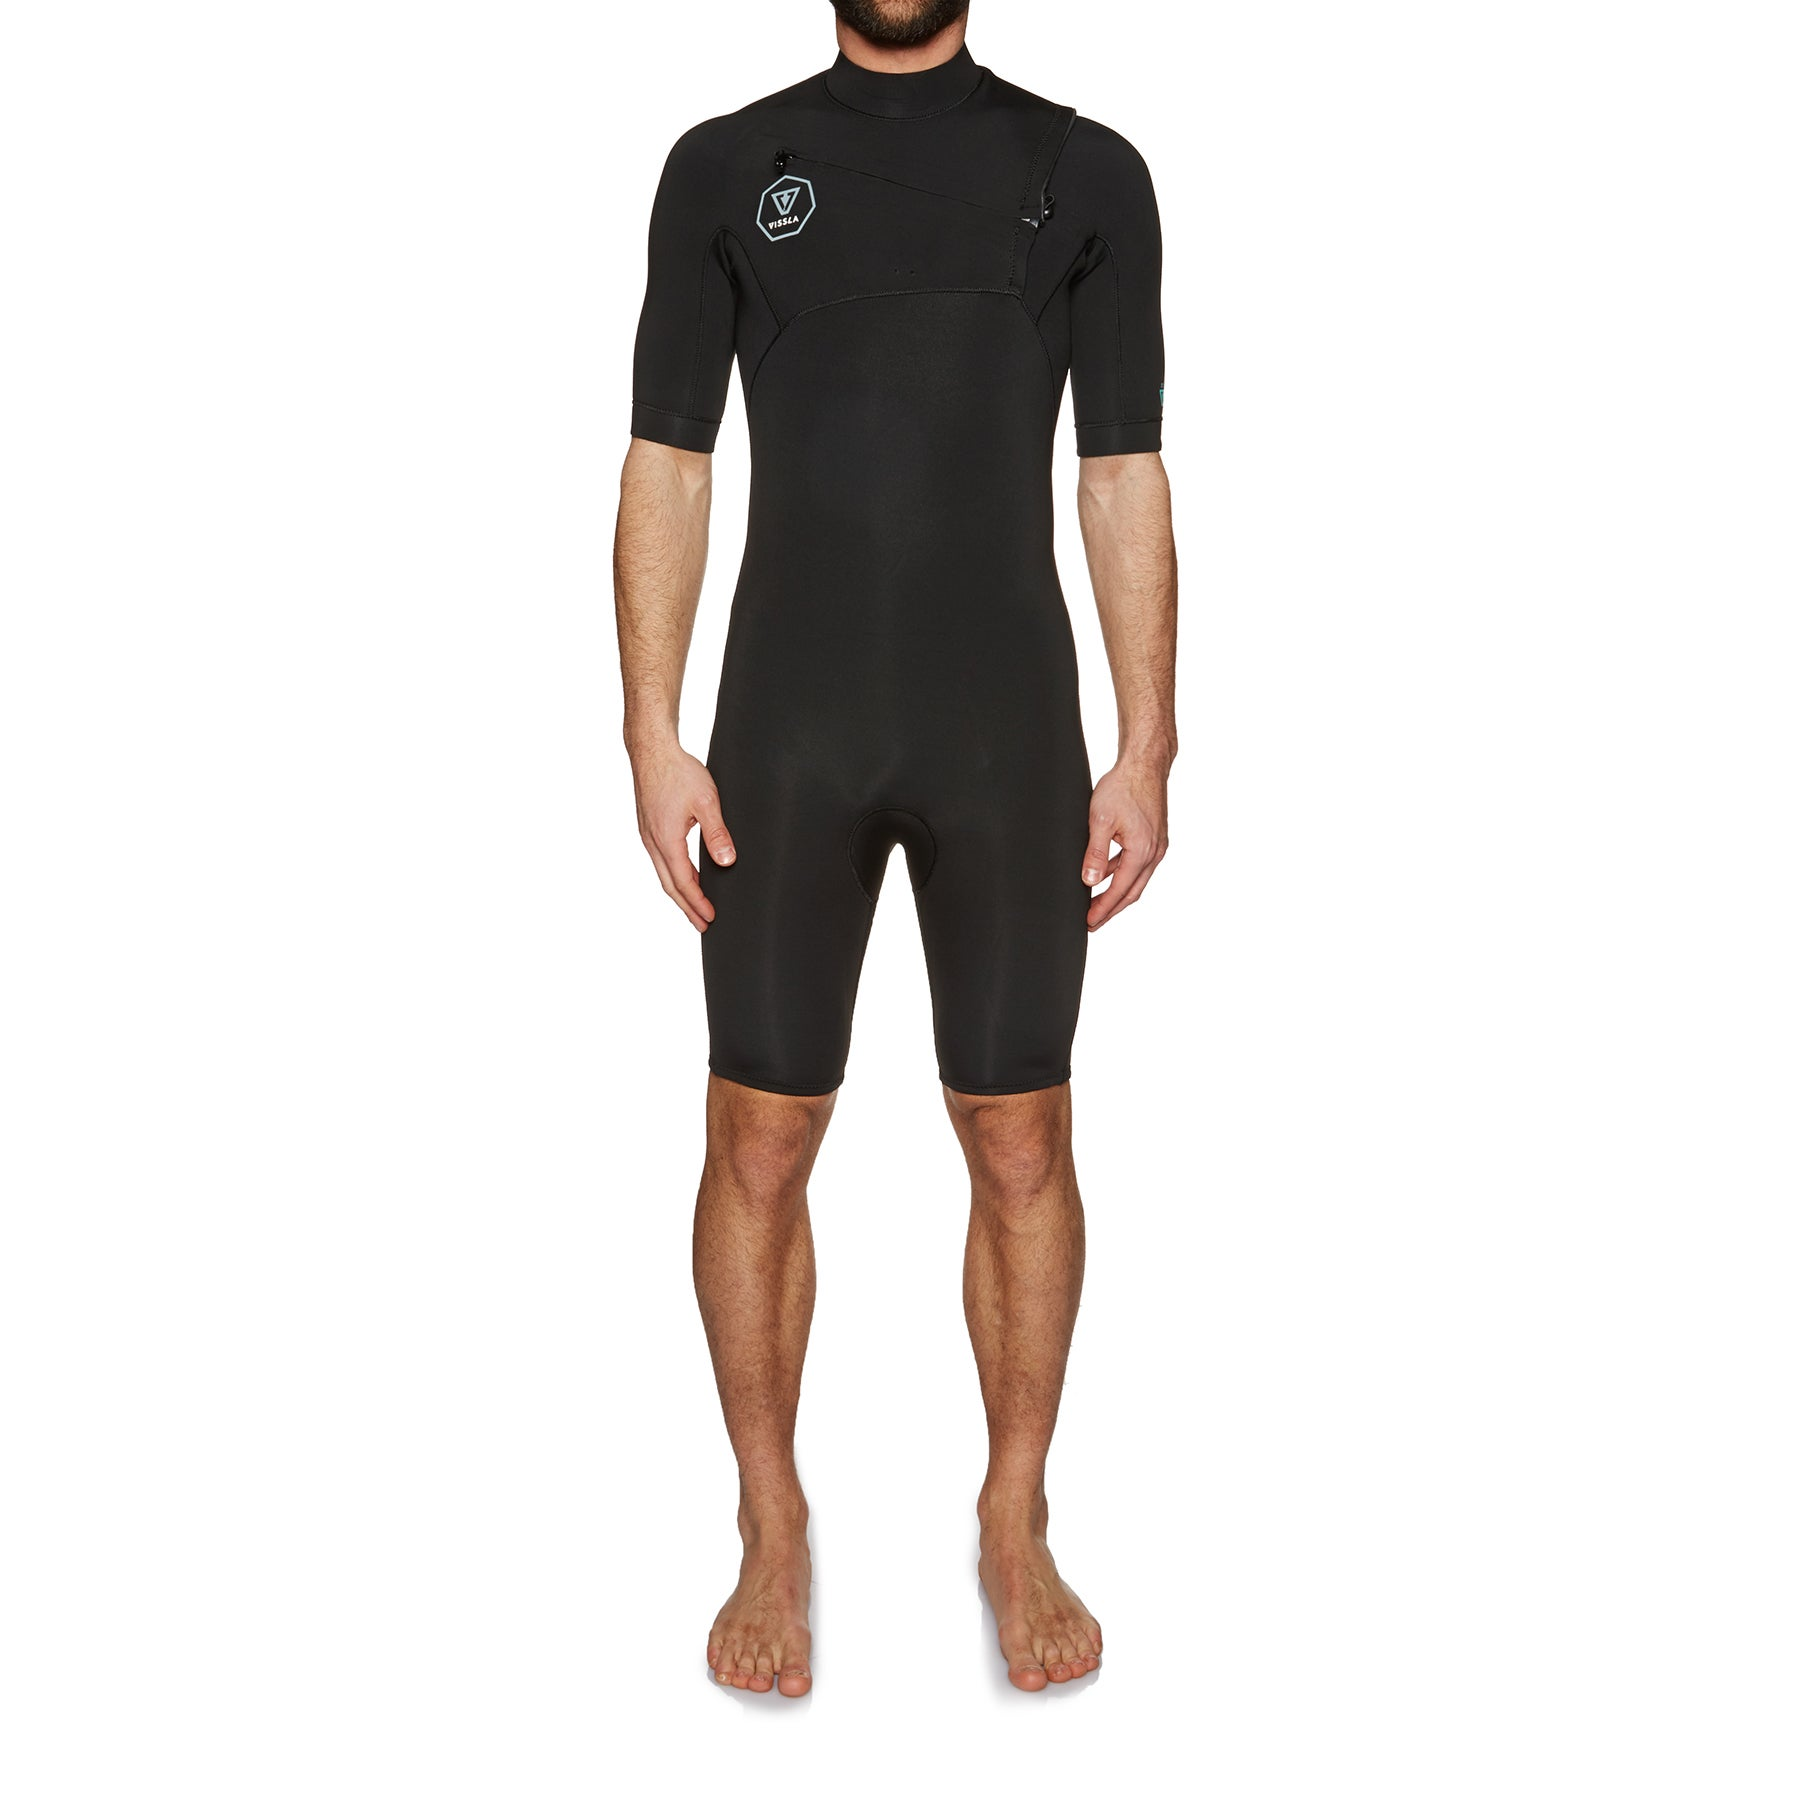 Vissla 7 Seas 2mm Chest Zip Shorty Wetsuit - Black Fade